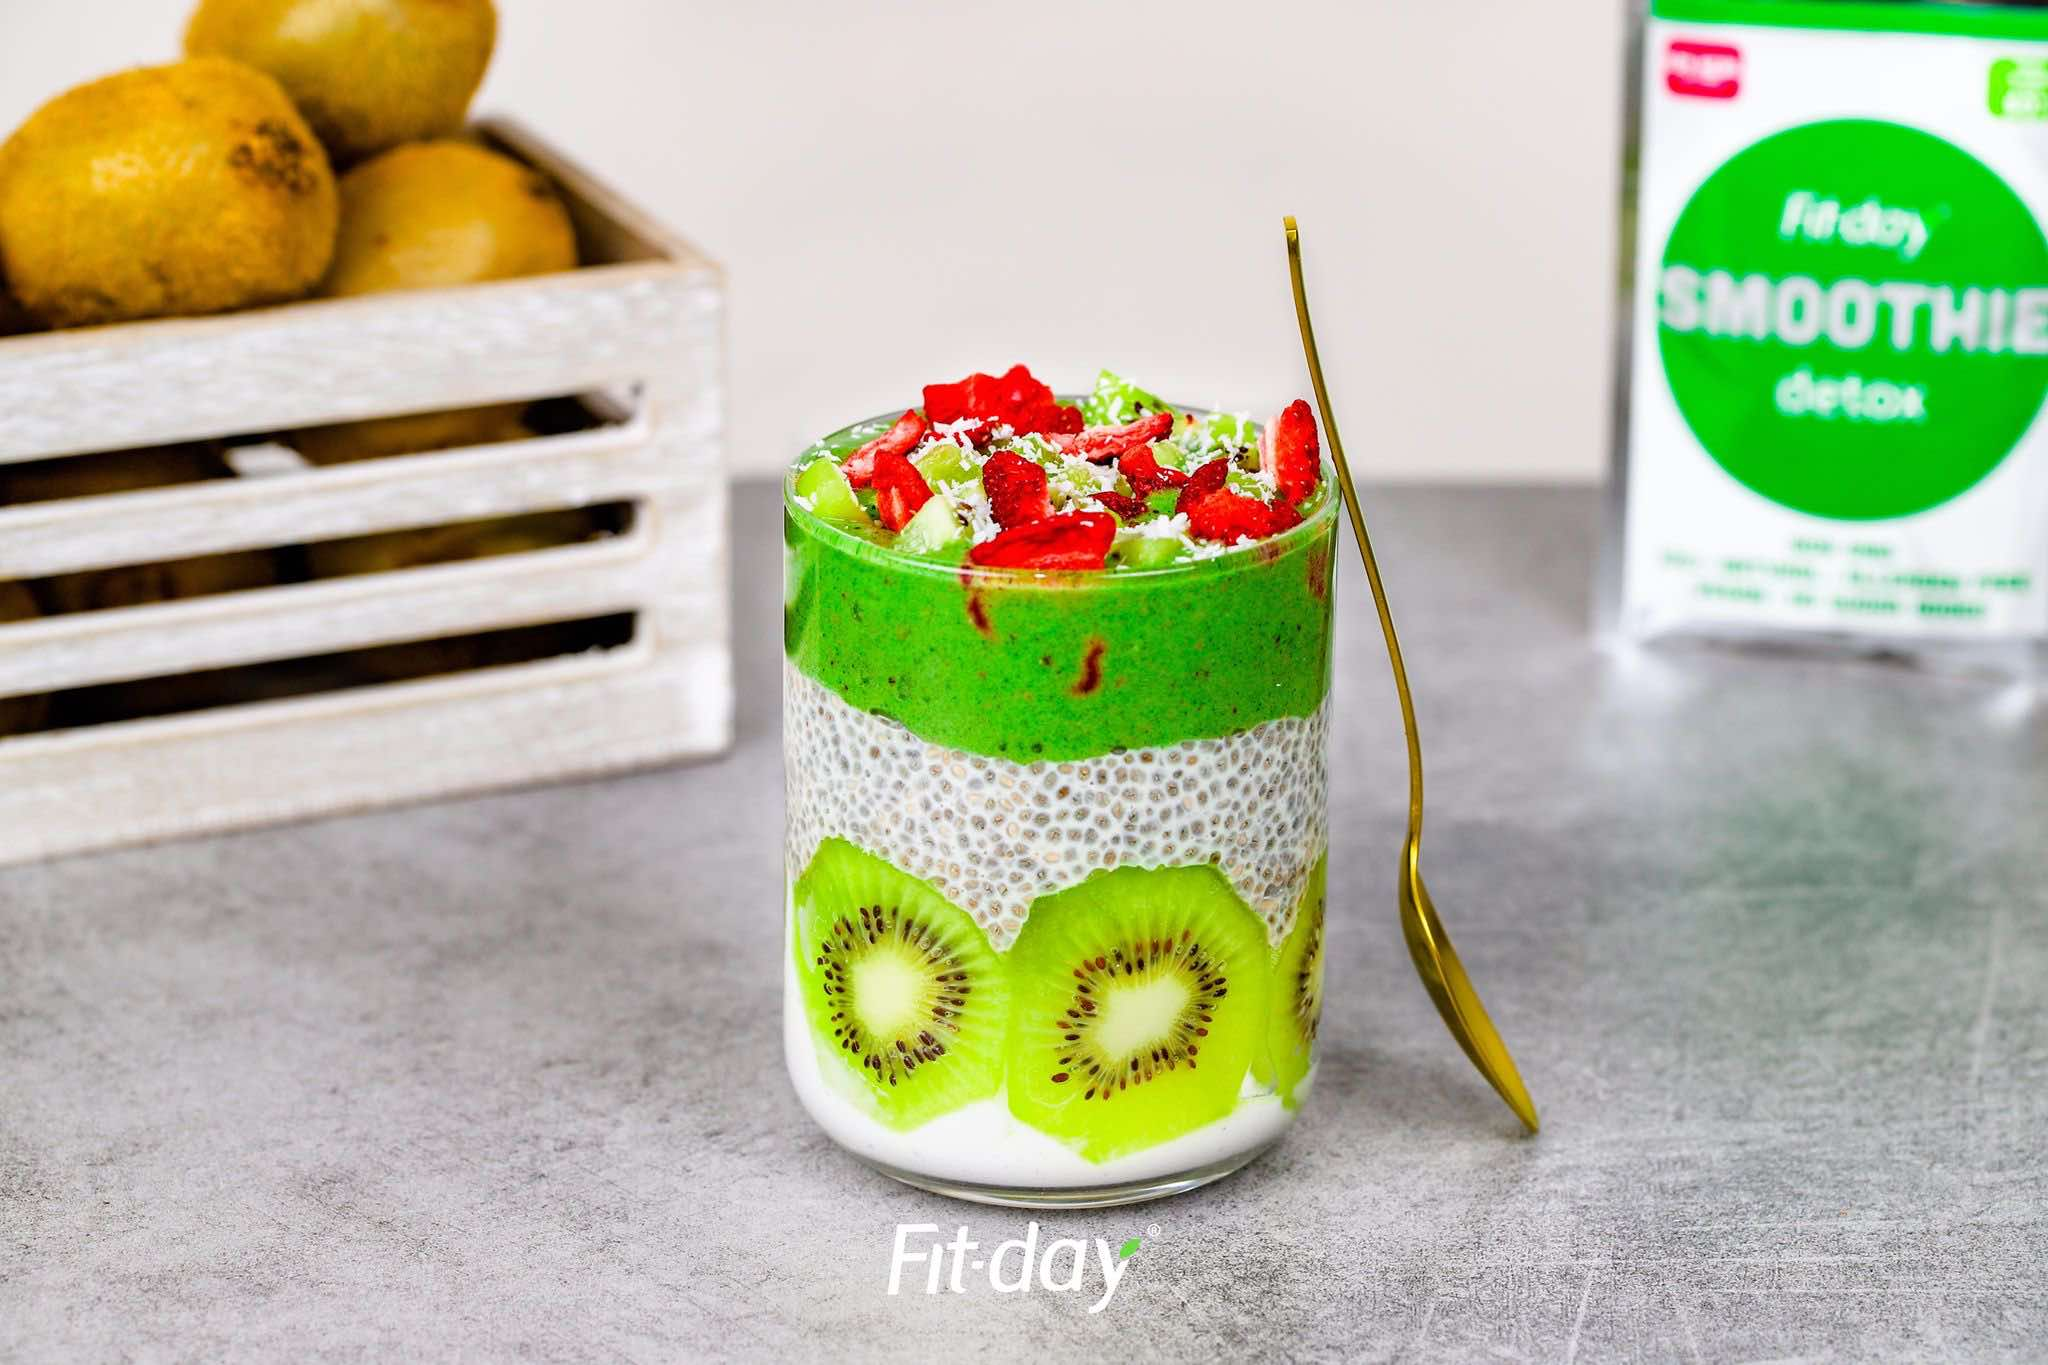 Fit-day kiwi-chia pudink